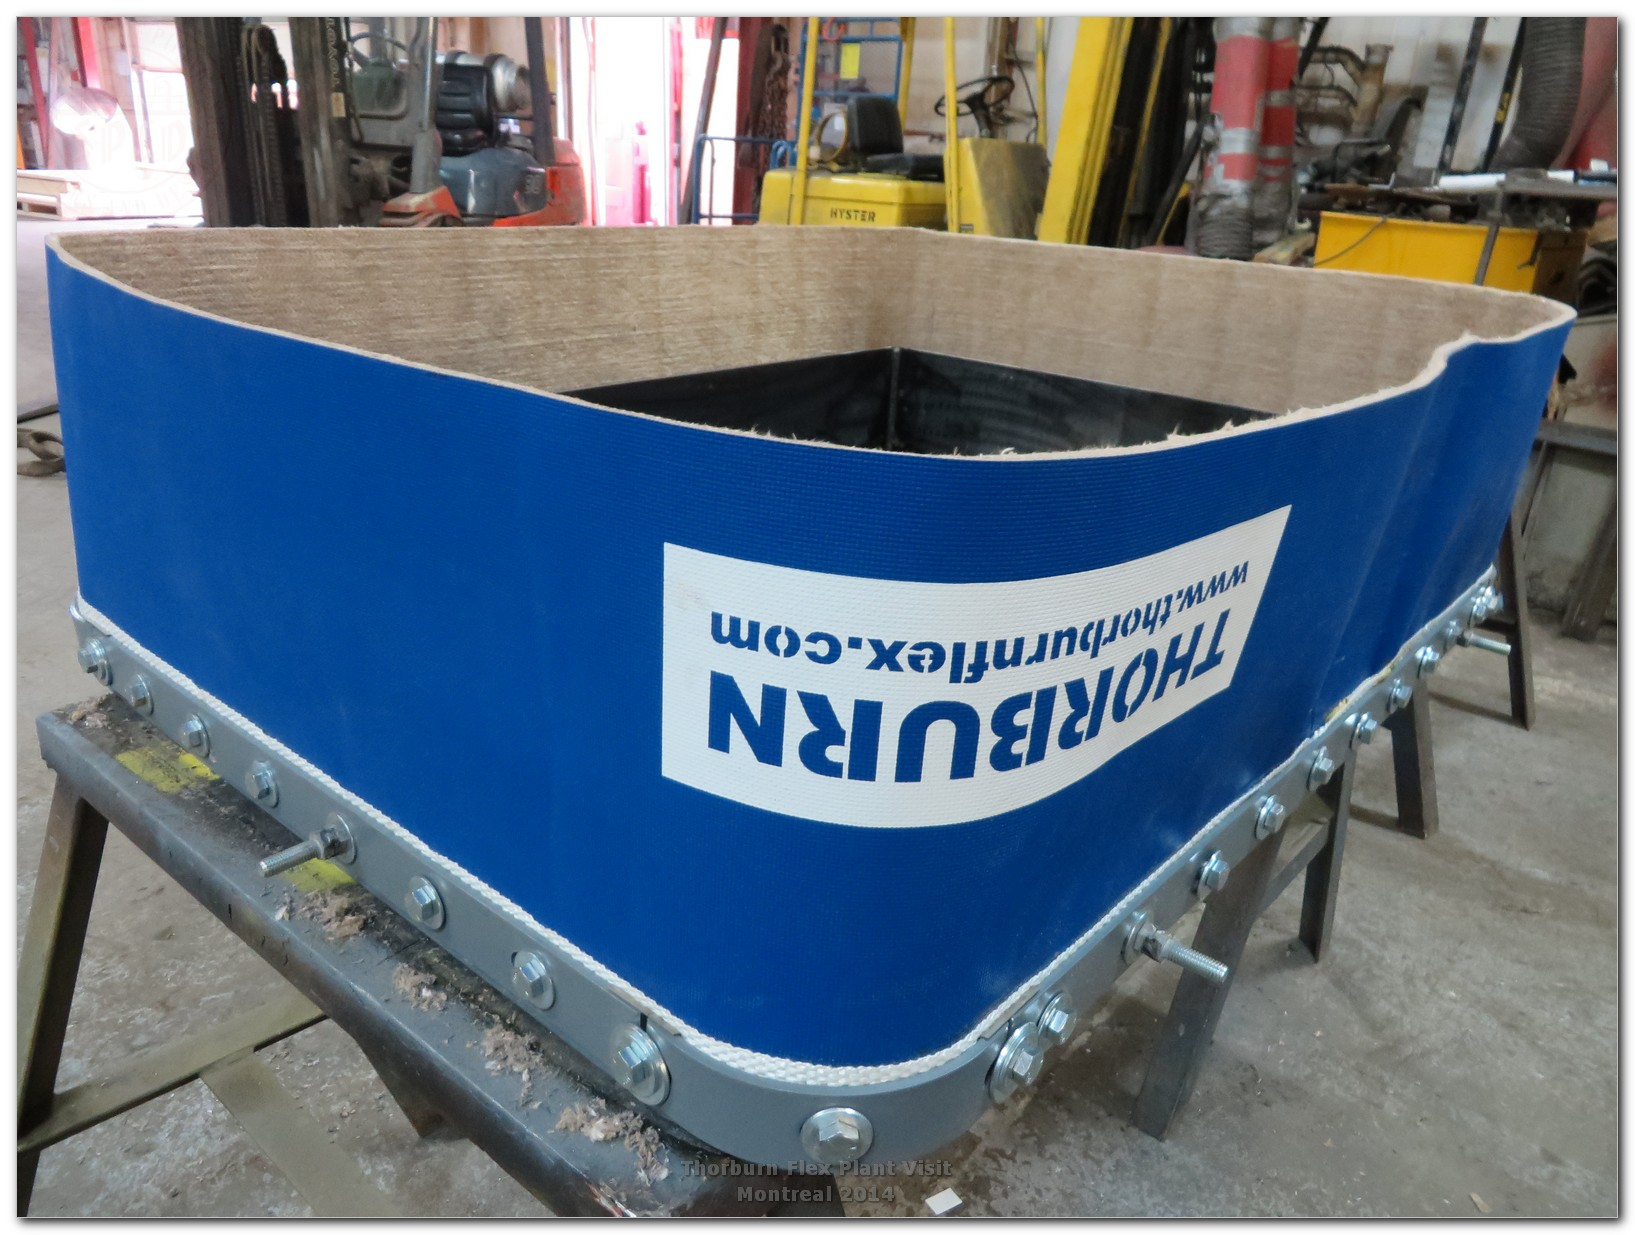 Fabric expansion joint in assembly stage. Flexible membrane made of composite material:PTFE (Teflon) coated fiberglass with laminated PTFE continuous film and 1/2″of fiberglass insulation with a design temperature of 1000°F